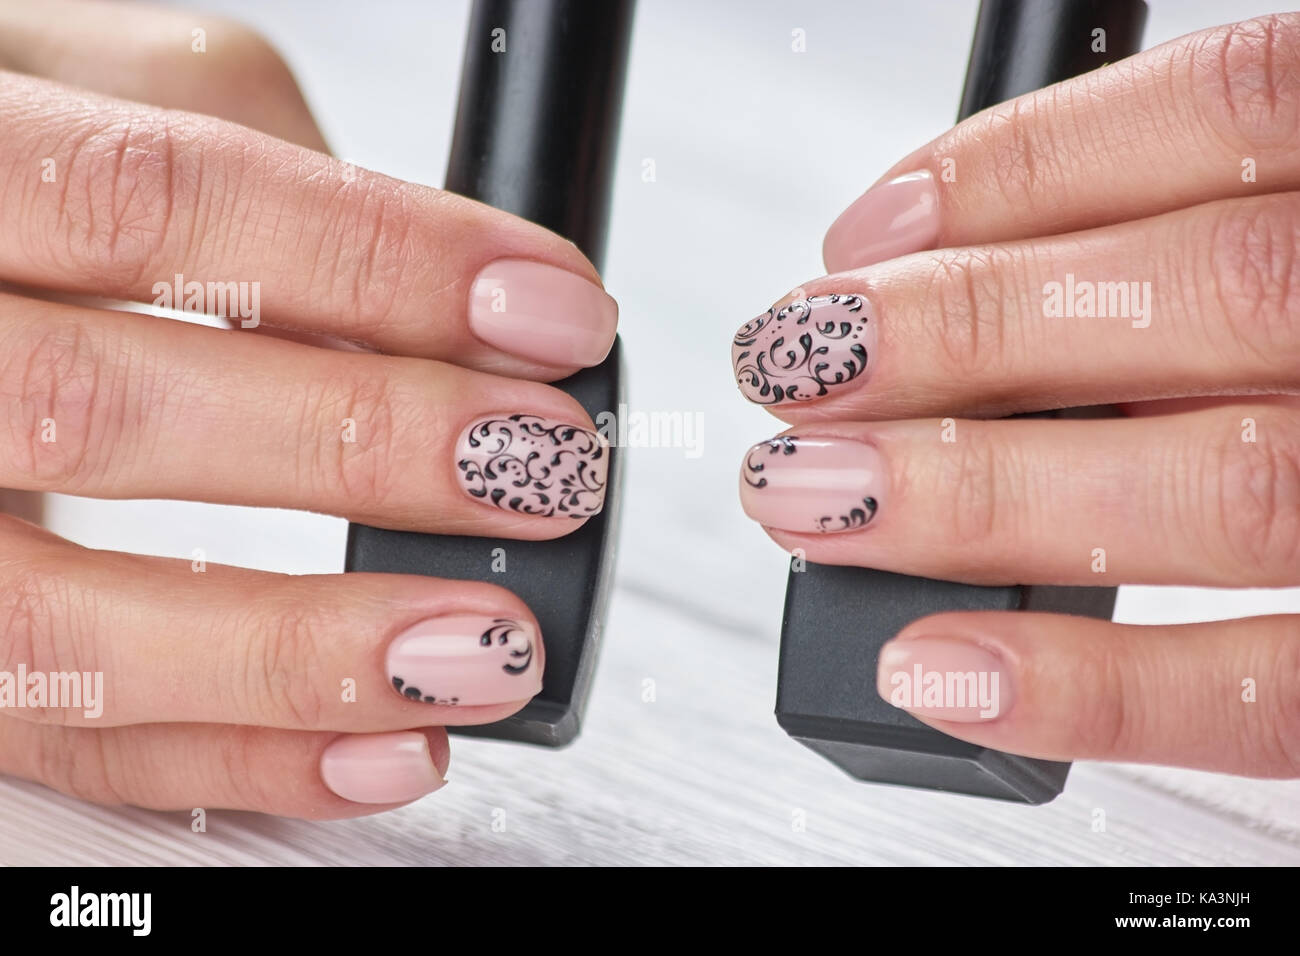 Perfect beige patterned manicure. Female manicured hands holding ...